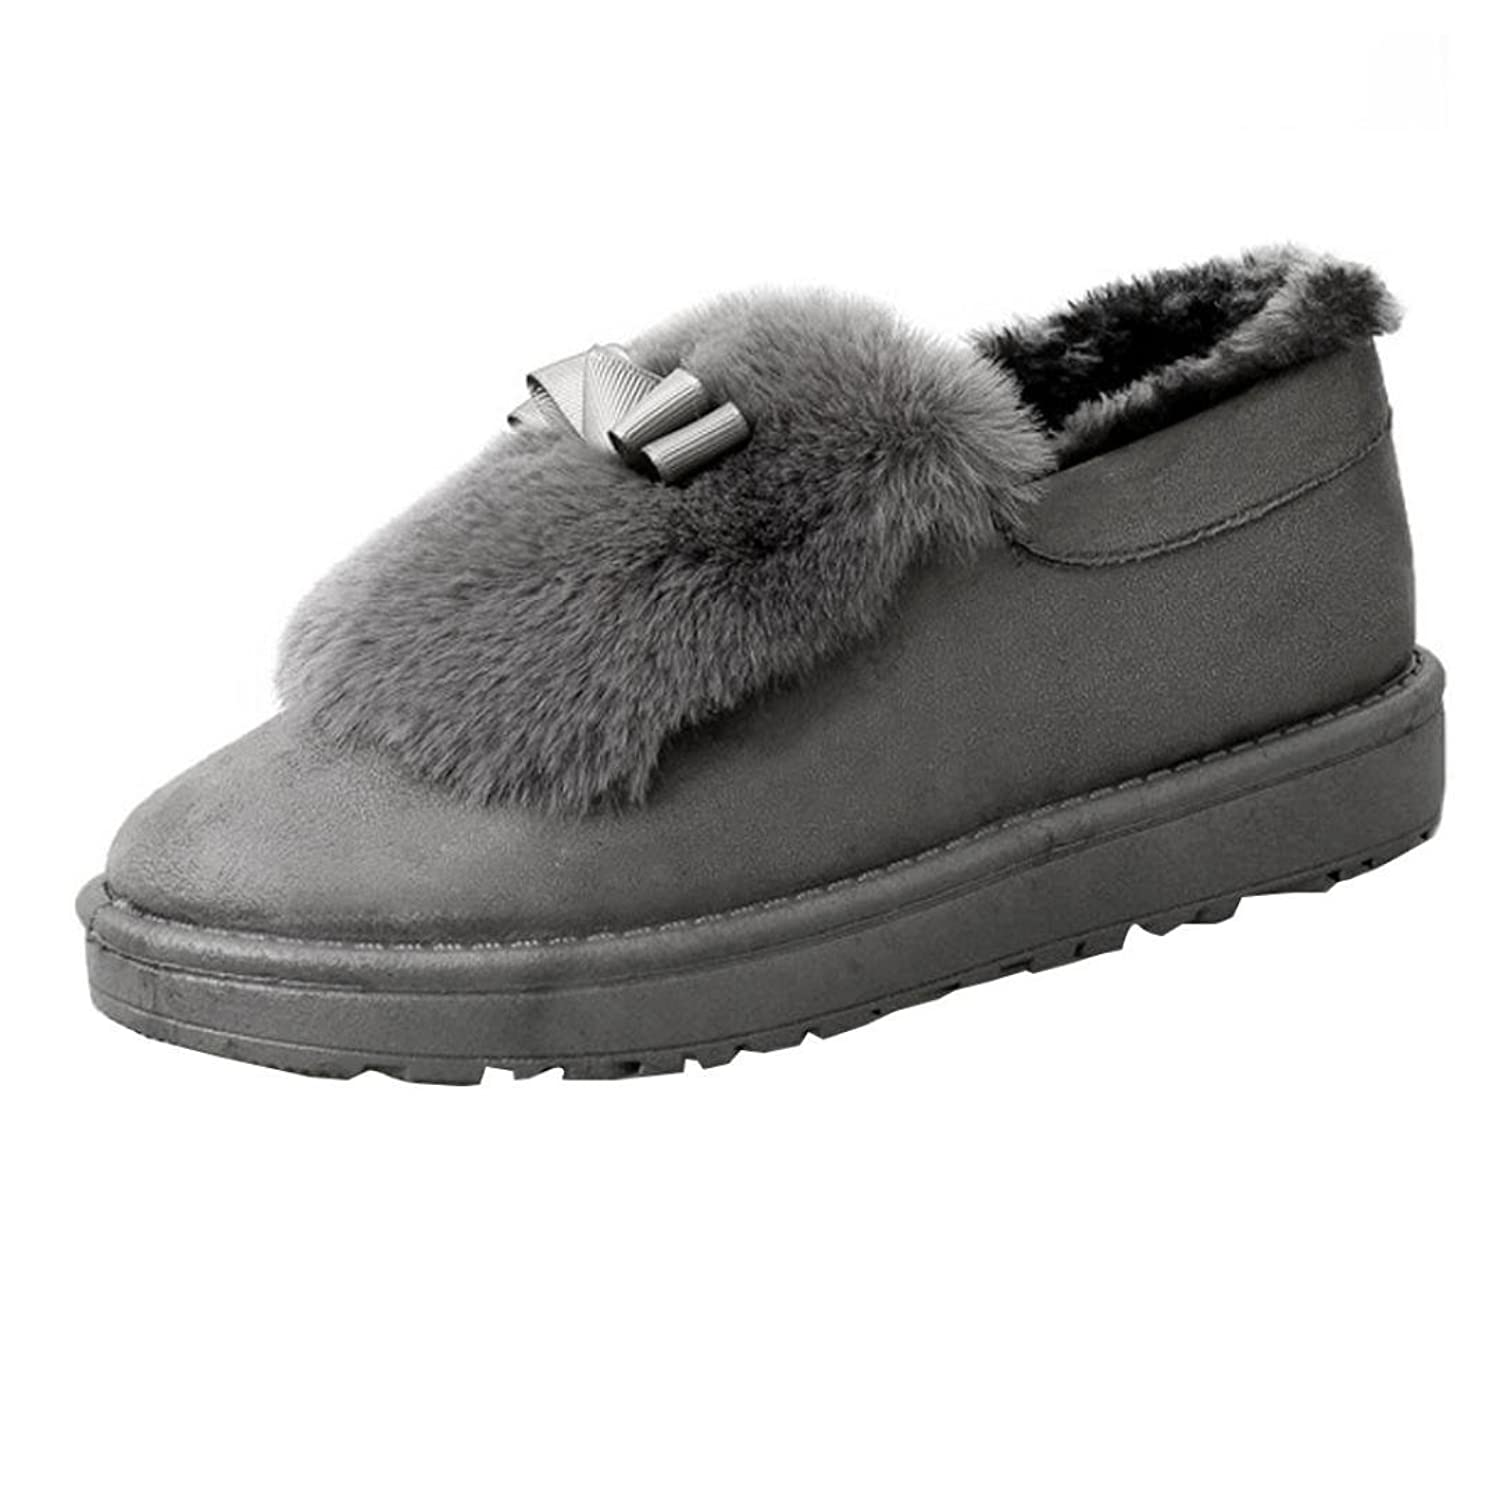 Fheaven Fashion Women Boots Flat Ankle Fur Lined Winter Warm Snow Shoes Lazy Shoes